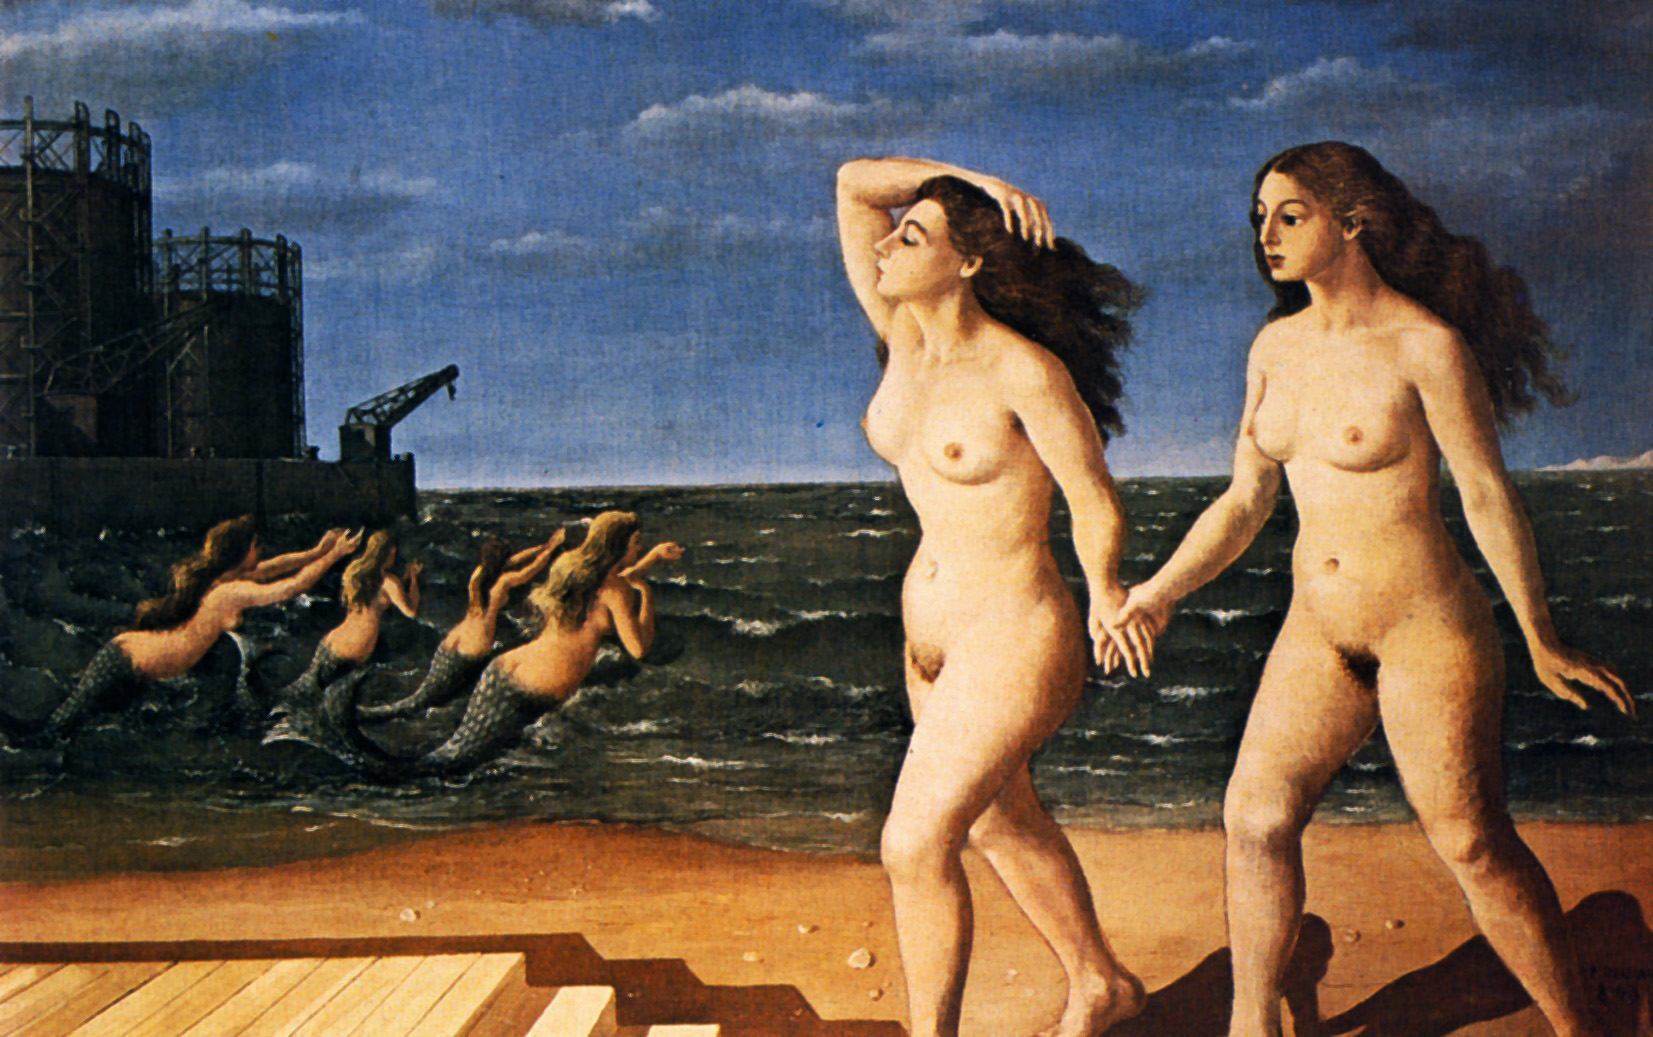 http://uploads4.wikipaintings.org/images/paul-delvaux/woman-in-front-of-the-sea-1943.jpg